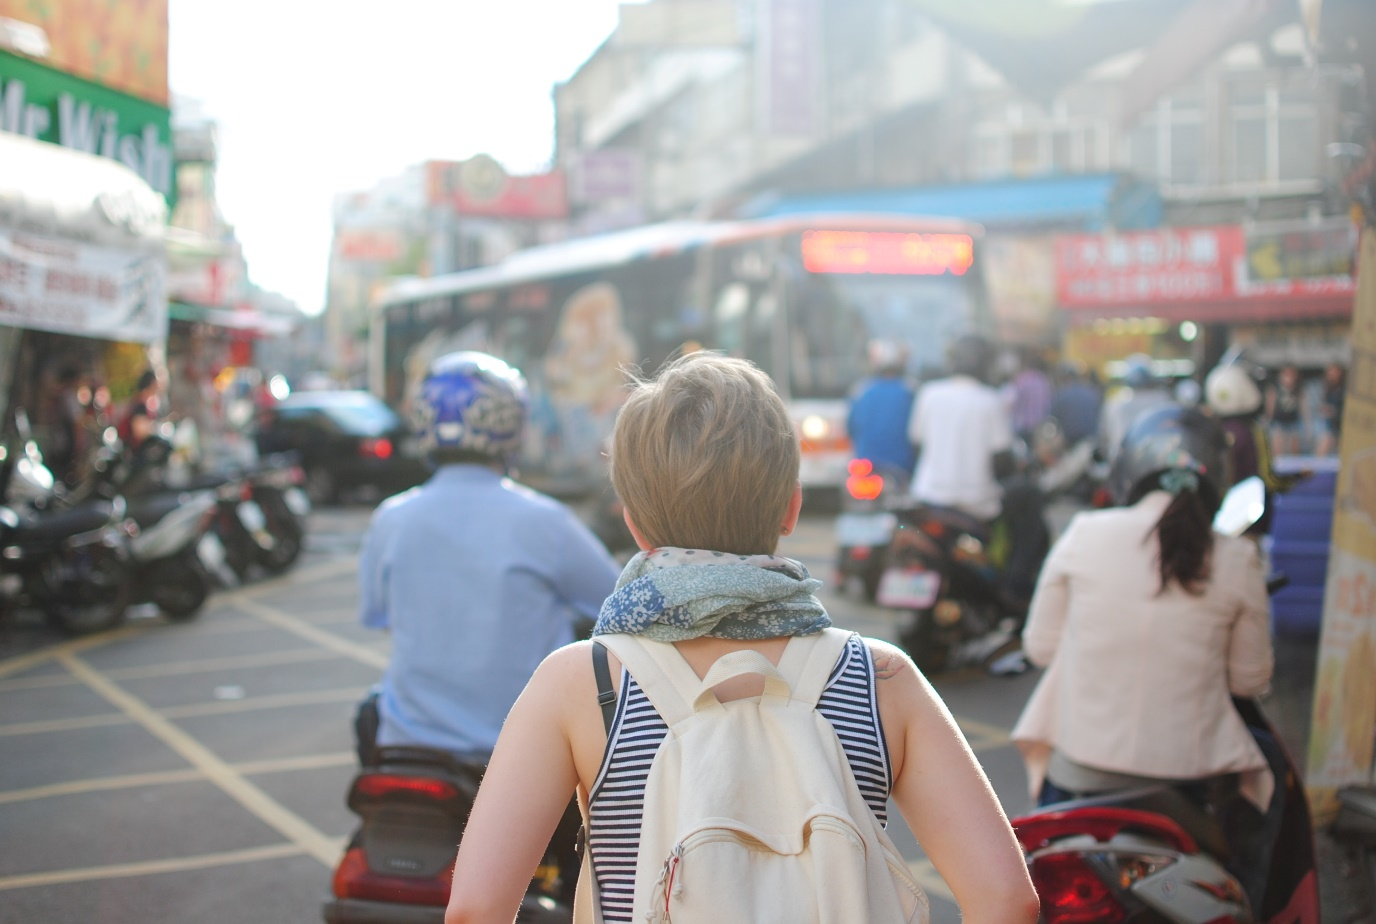 learn a new language by travelling